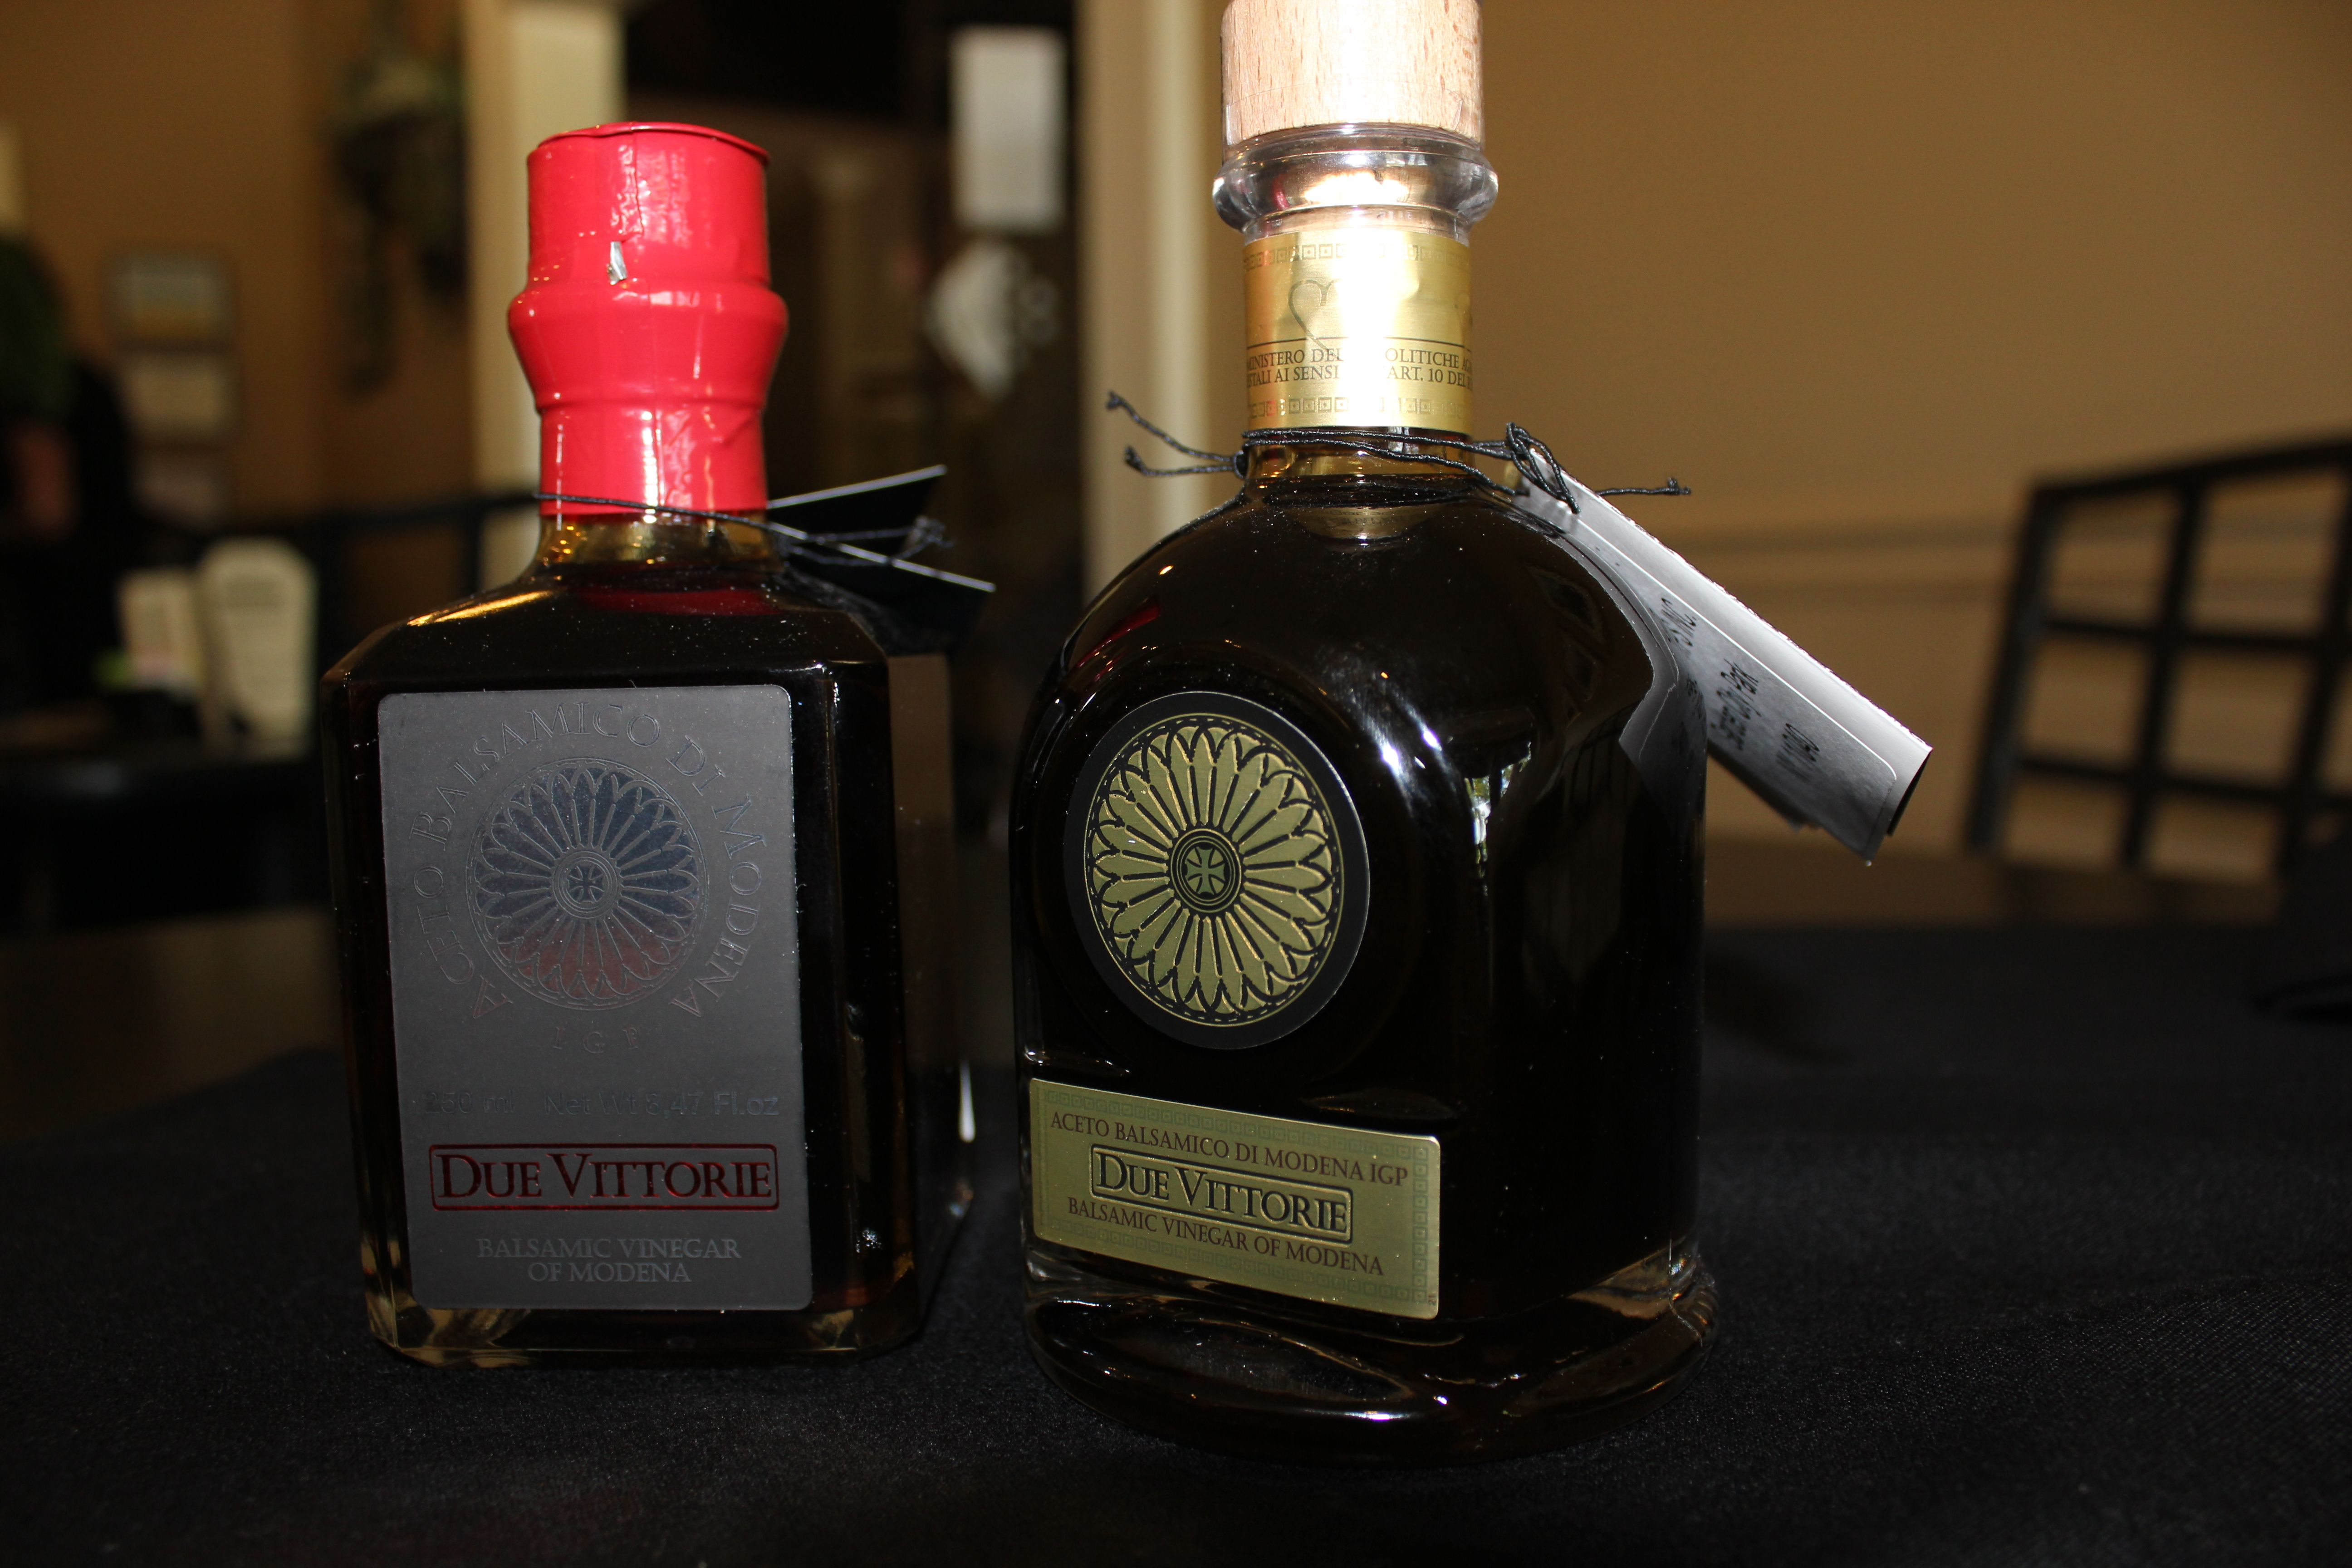 Due Vittorie Balsamic Vinegar Of Modena The Slow Ageing Is A